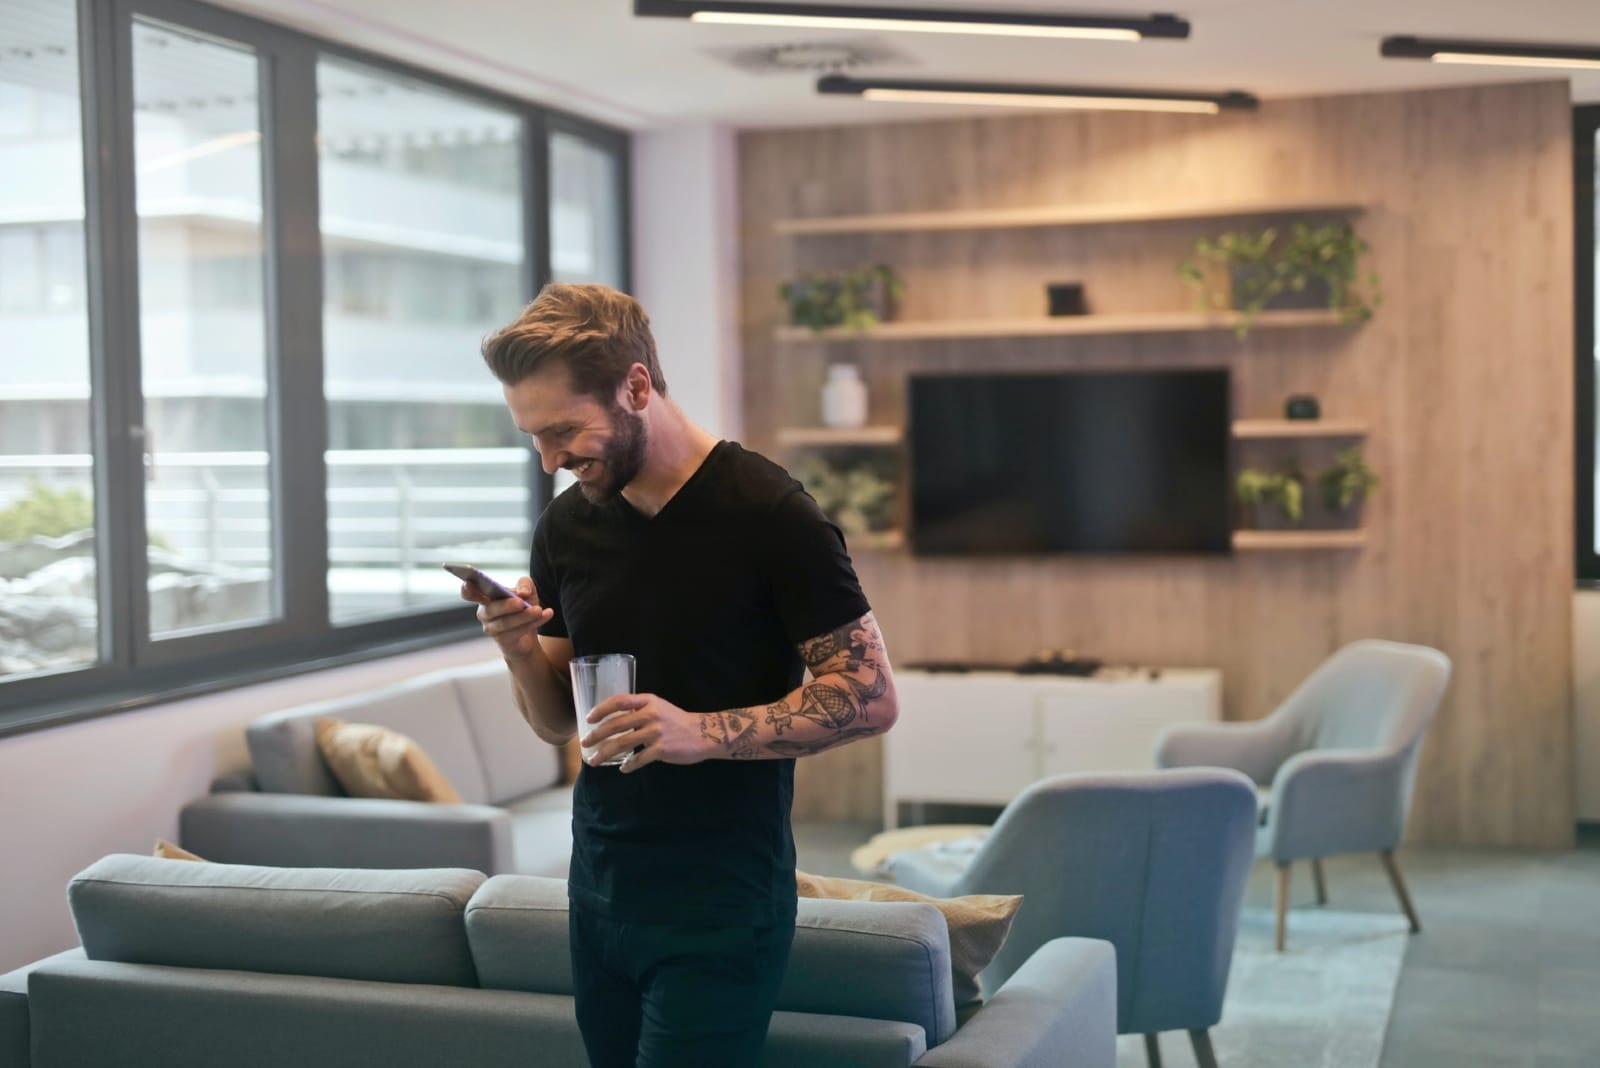 man in black t-shirt using smartphone while standing indoor